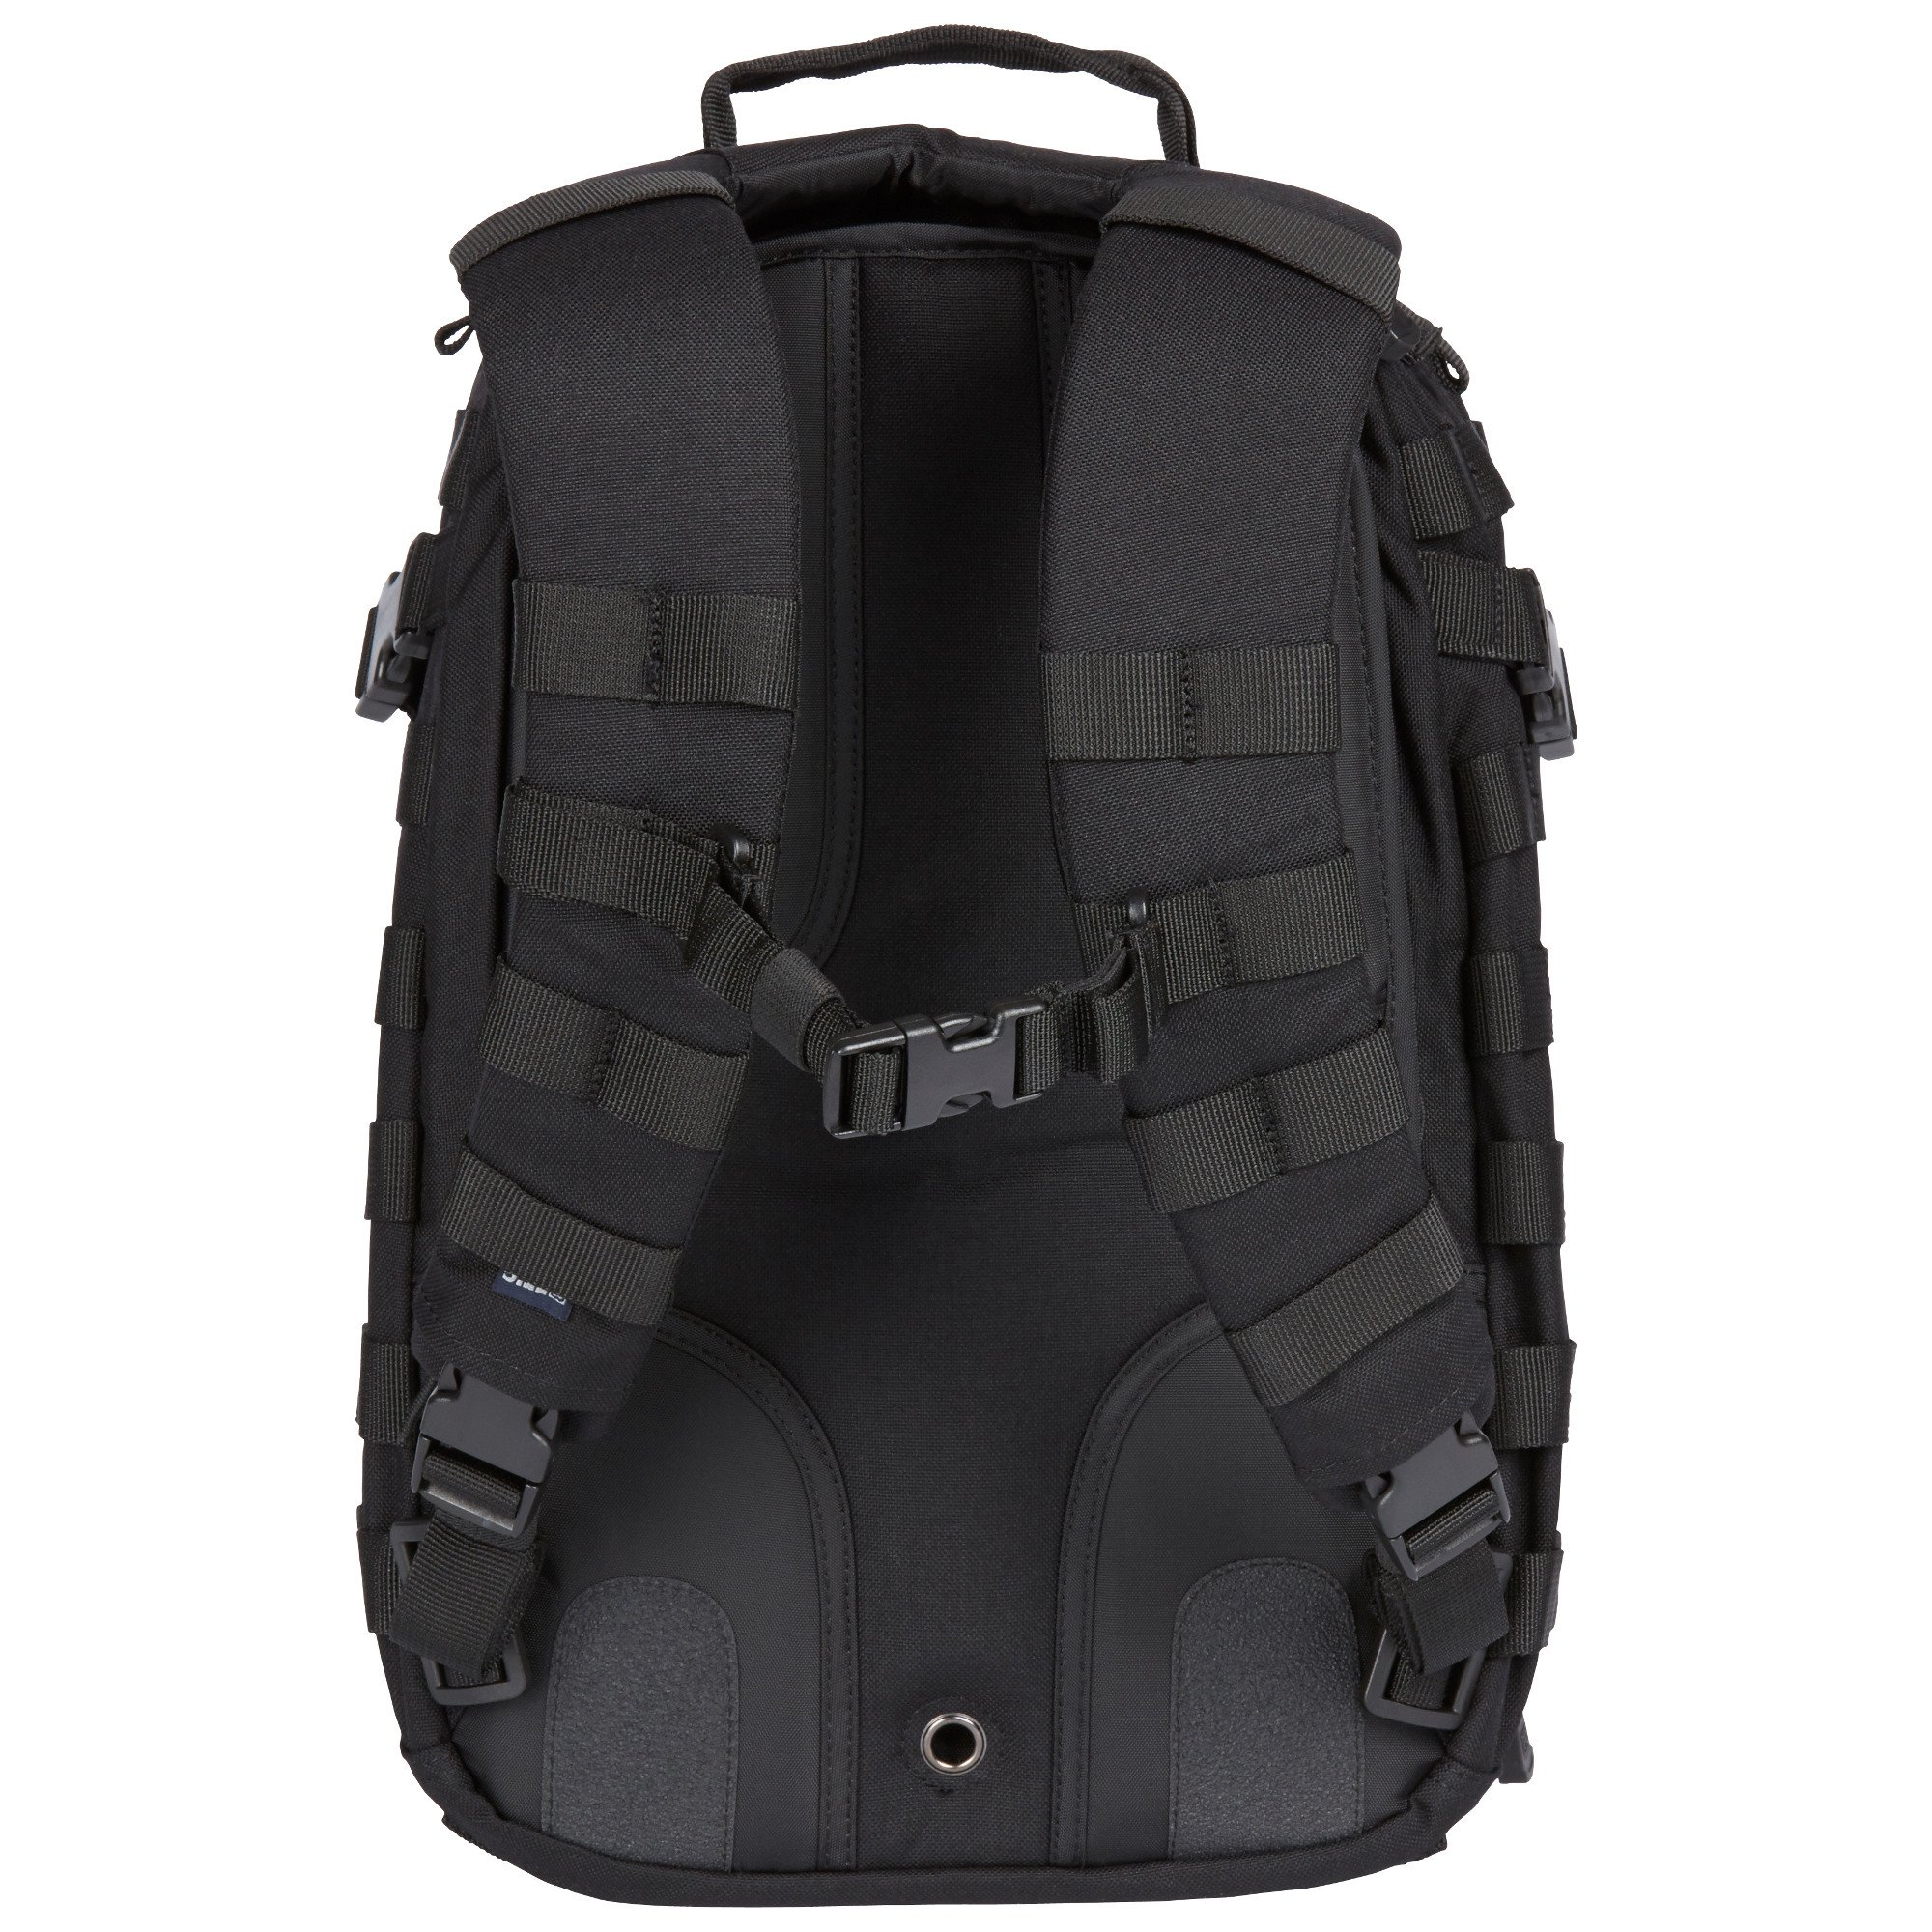 5.11 RUSH12 Tactical Military Assault Molle Backpack, Bug Out Rucksack Bag, Small, Style 56892, Black by 5.11 (Image #3)